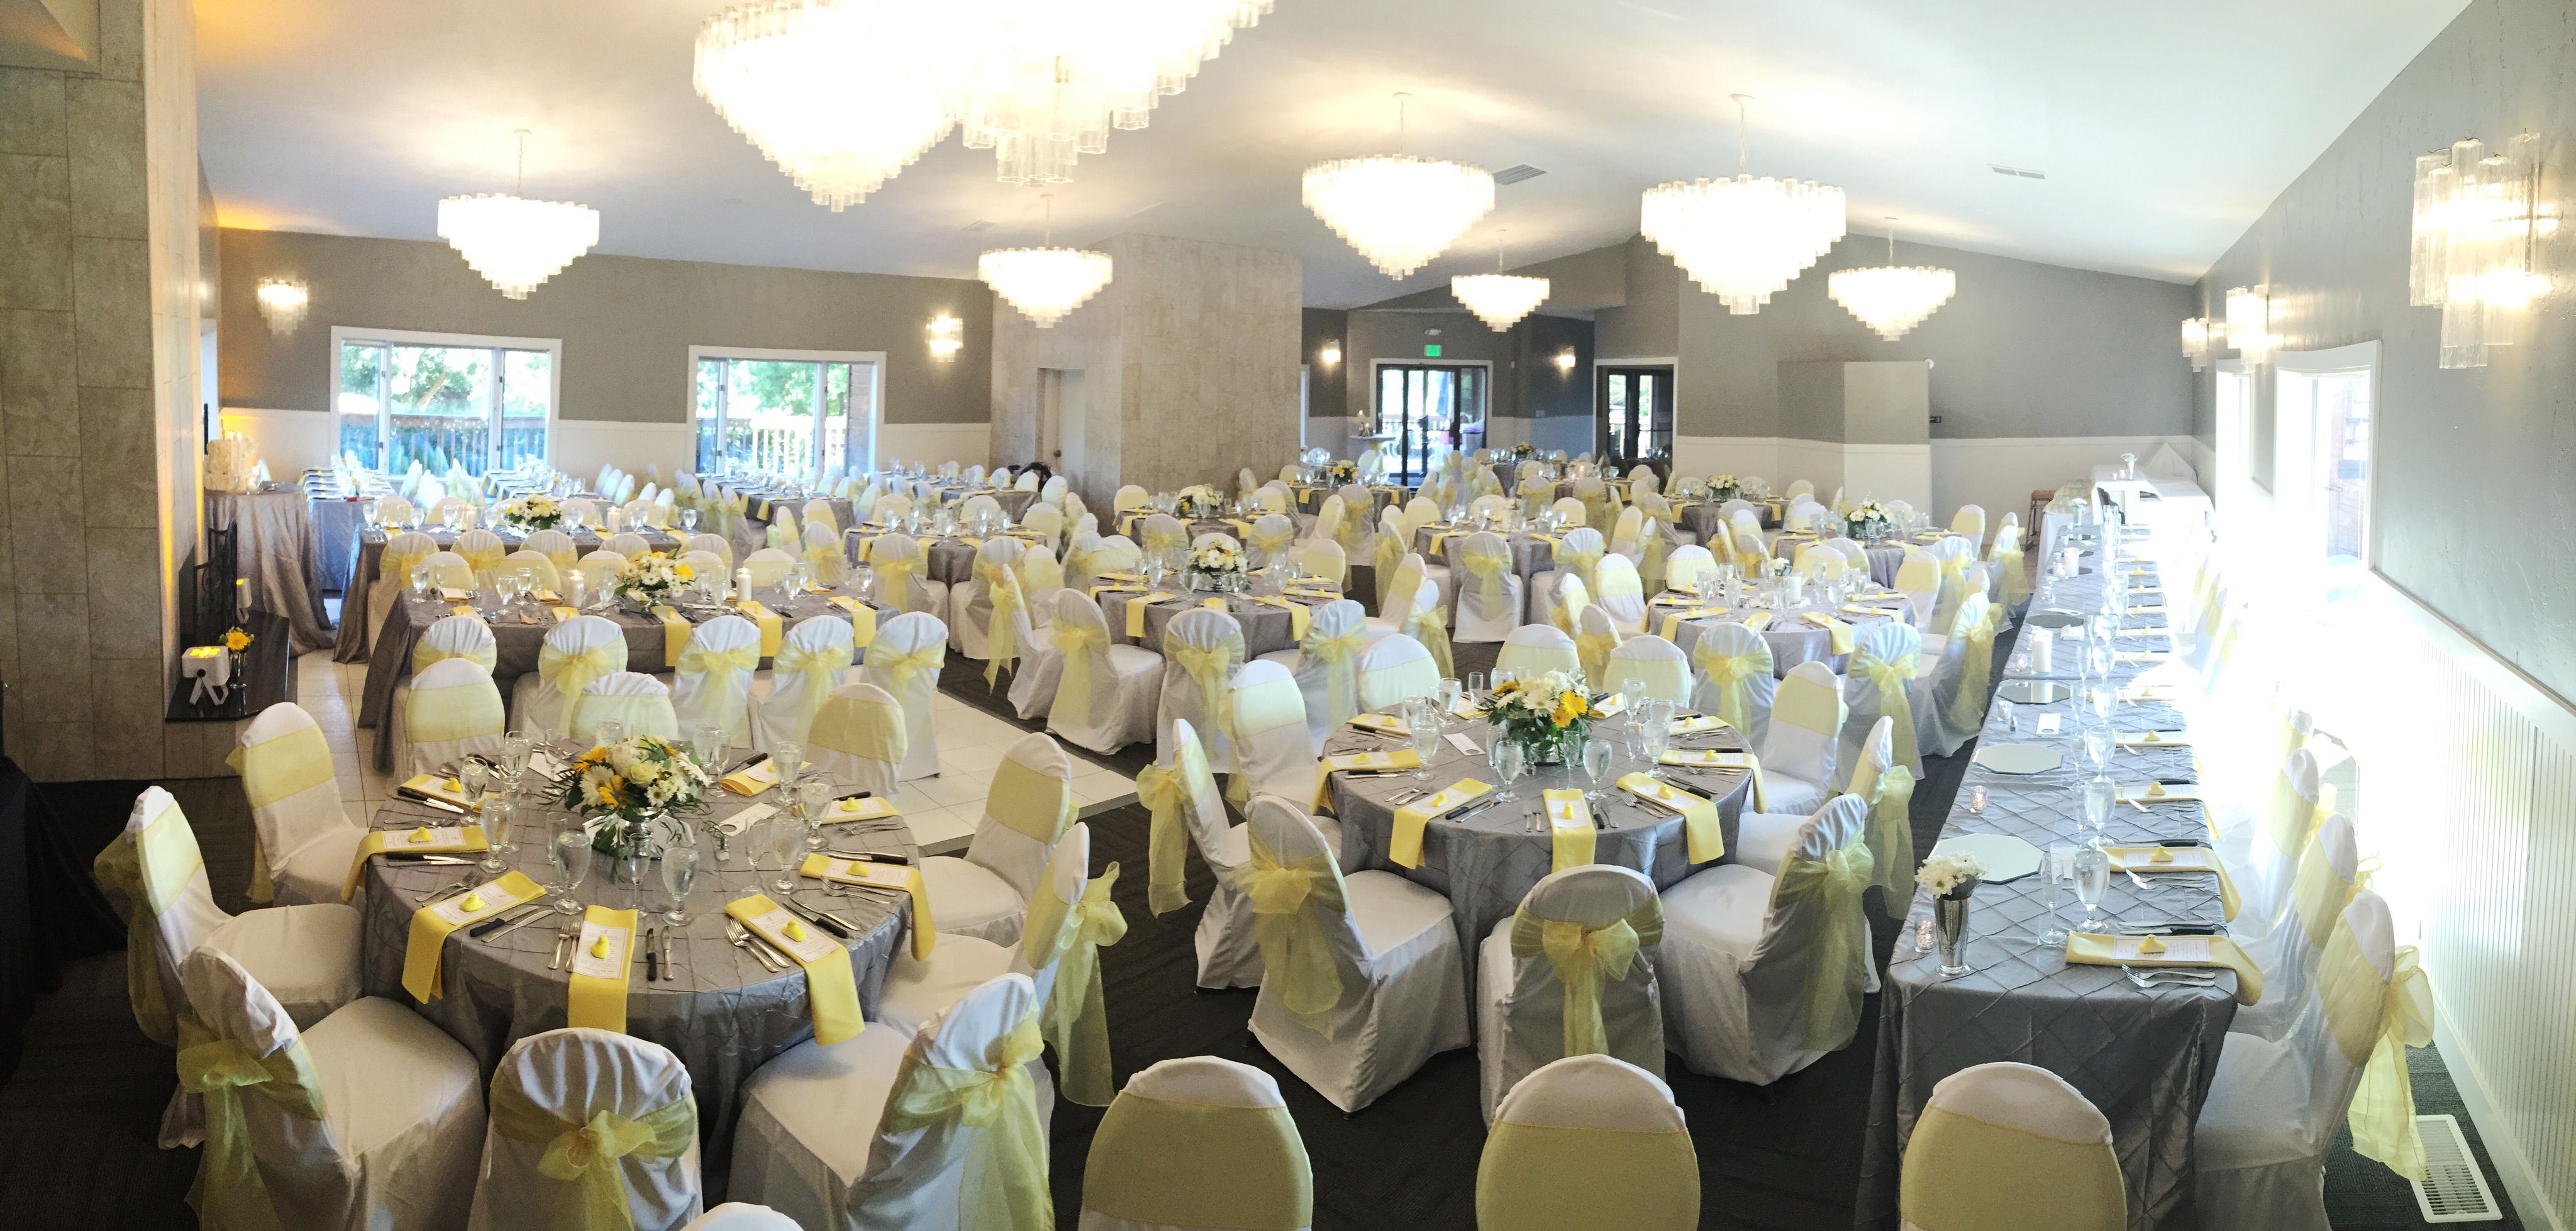 Wedding Reception Set For Over 200 In The Cedars Ballroom Eagle